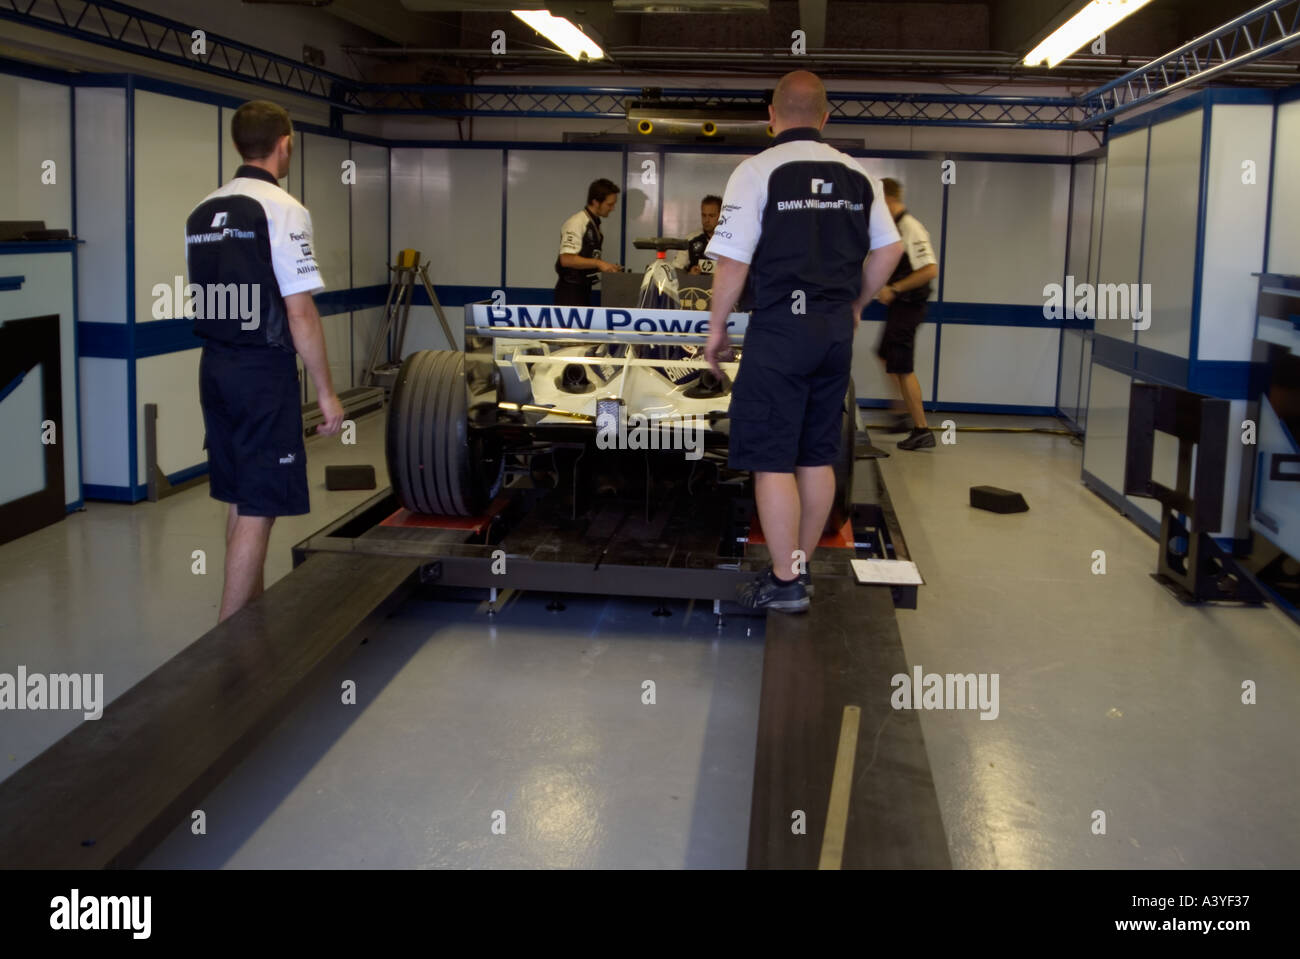 Garage Gym With Car Formula 1 Racing Car Pit Lane Garage Weighing Station Bmw Gilles